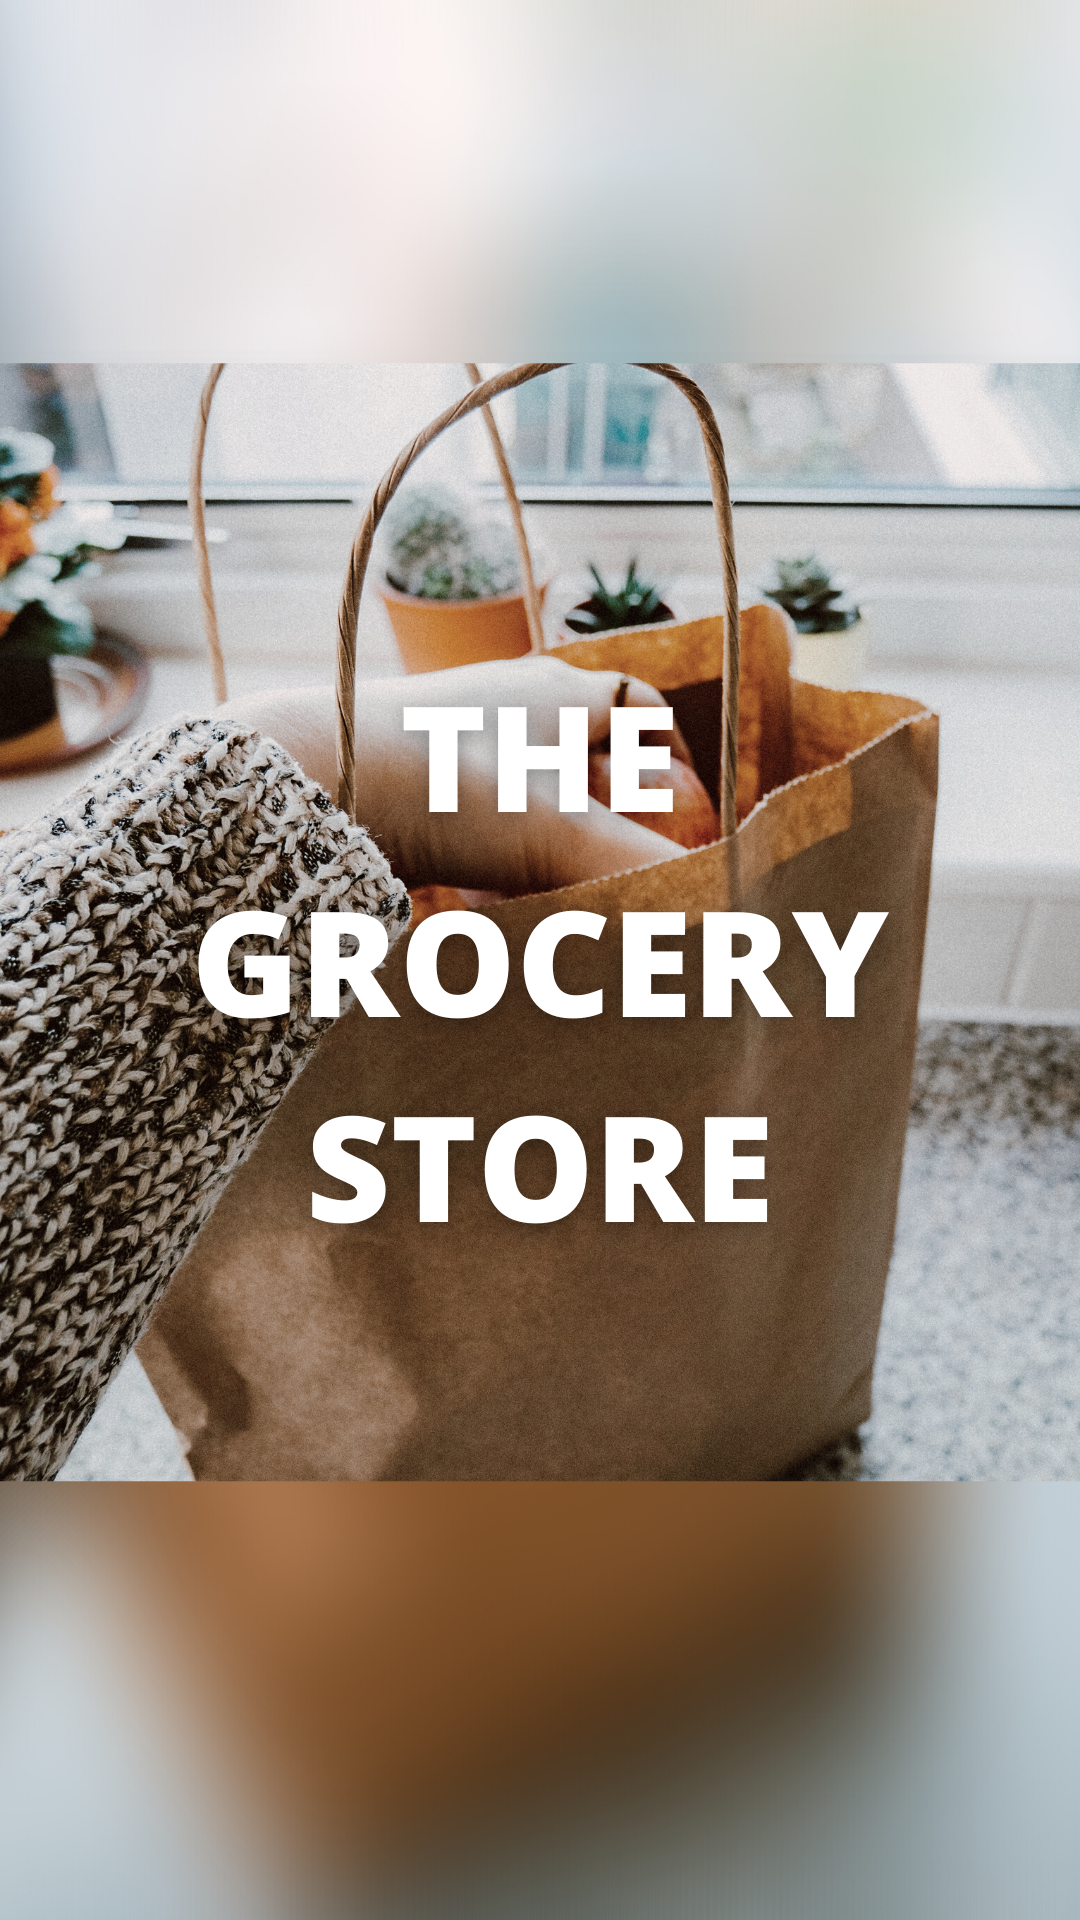 The Espresso Health Show: The Grocery Store